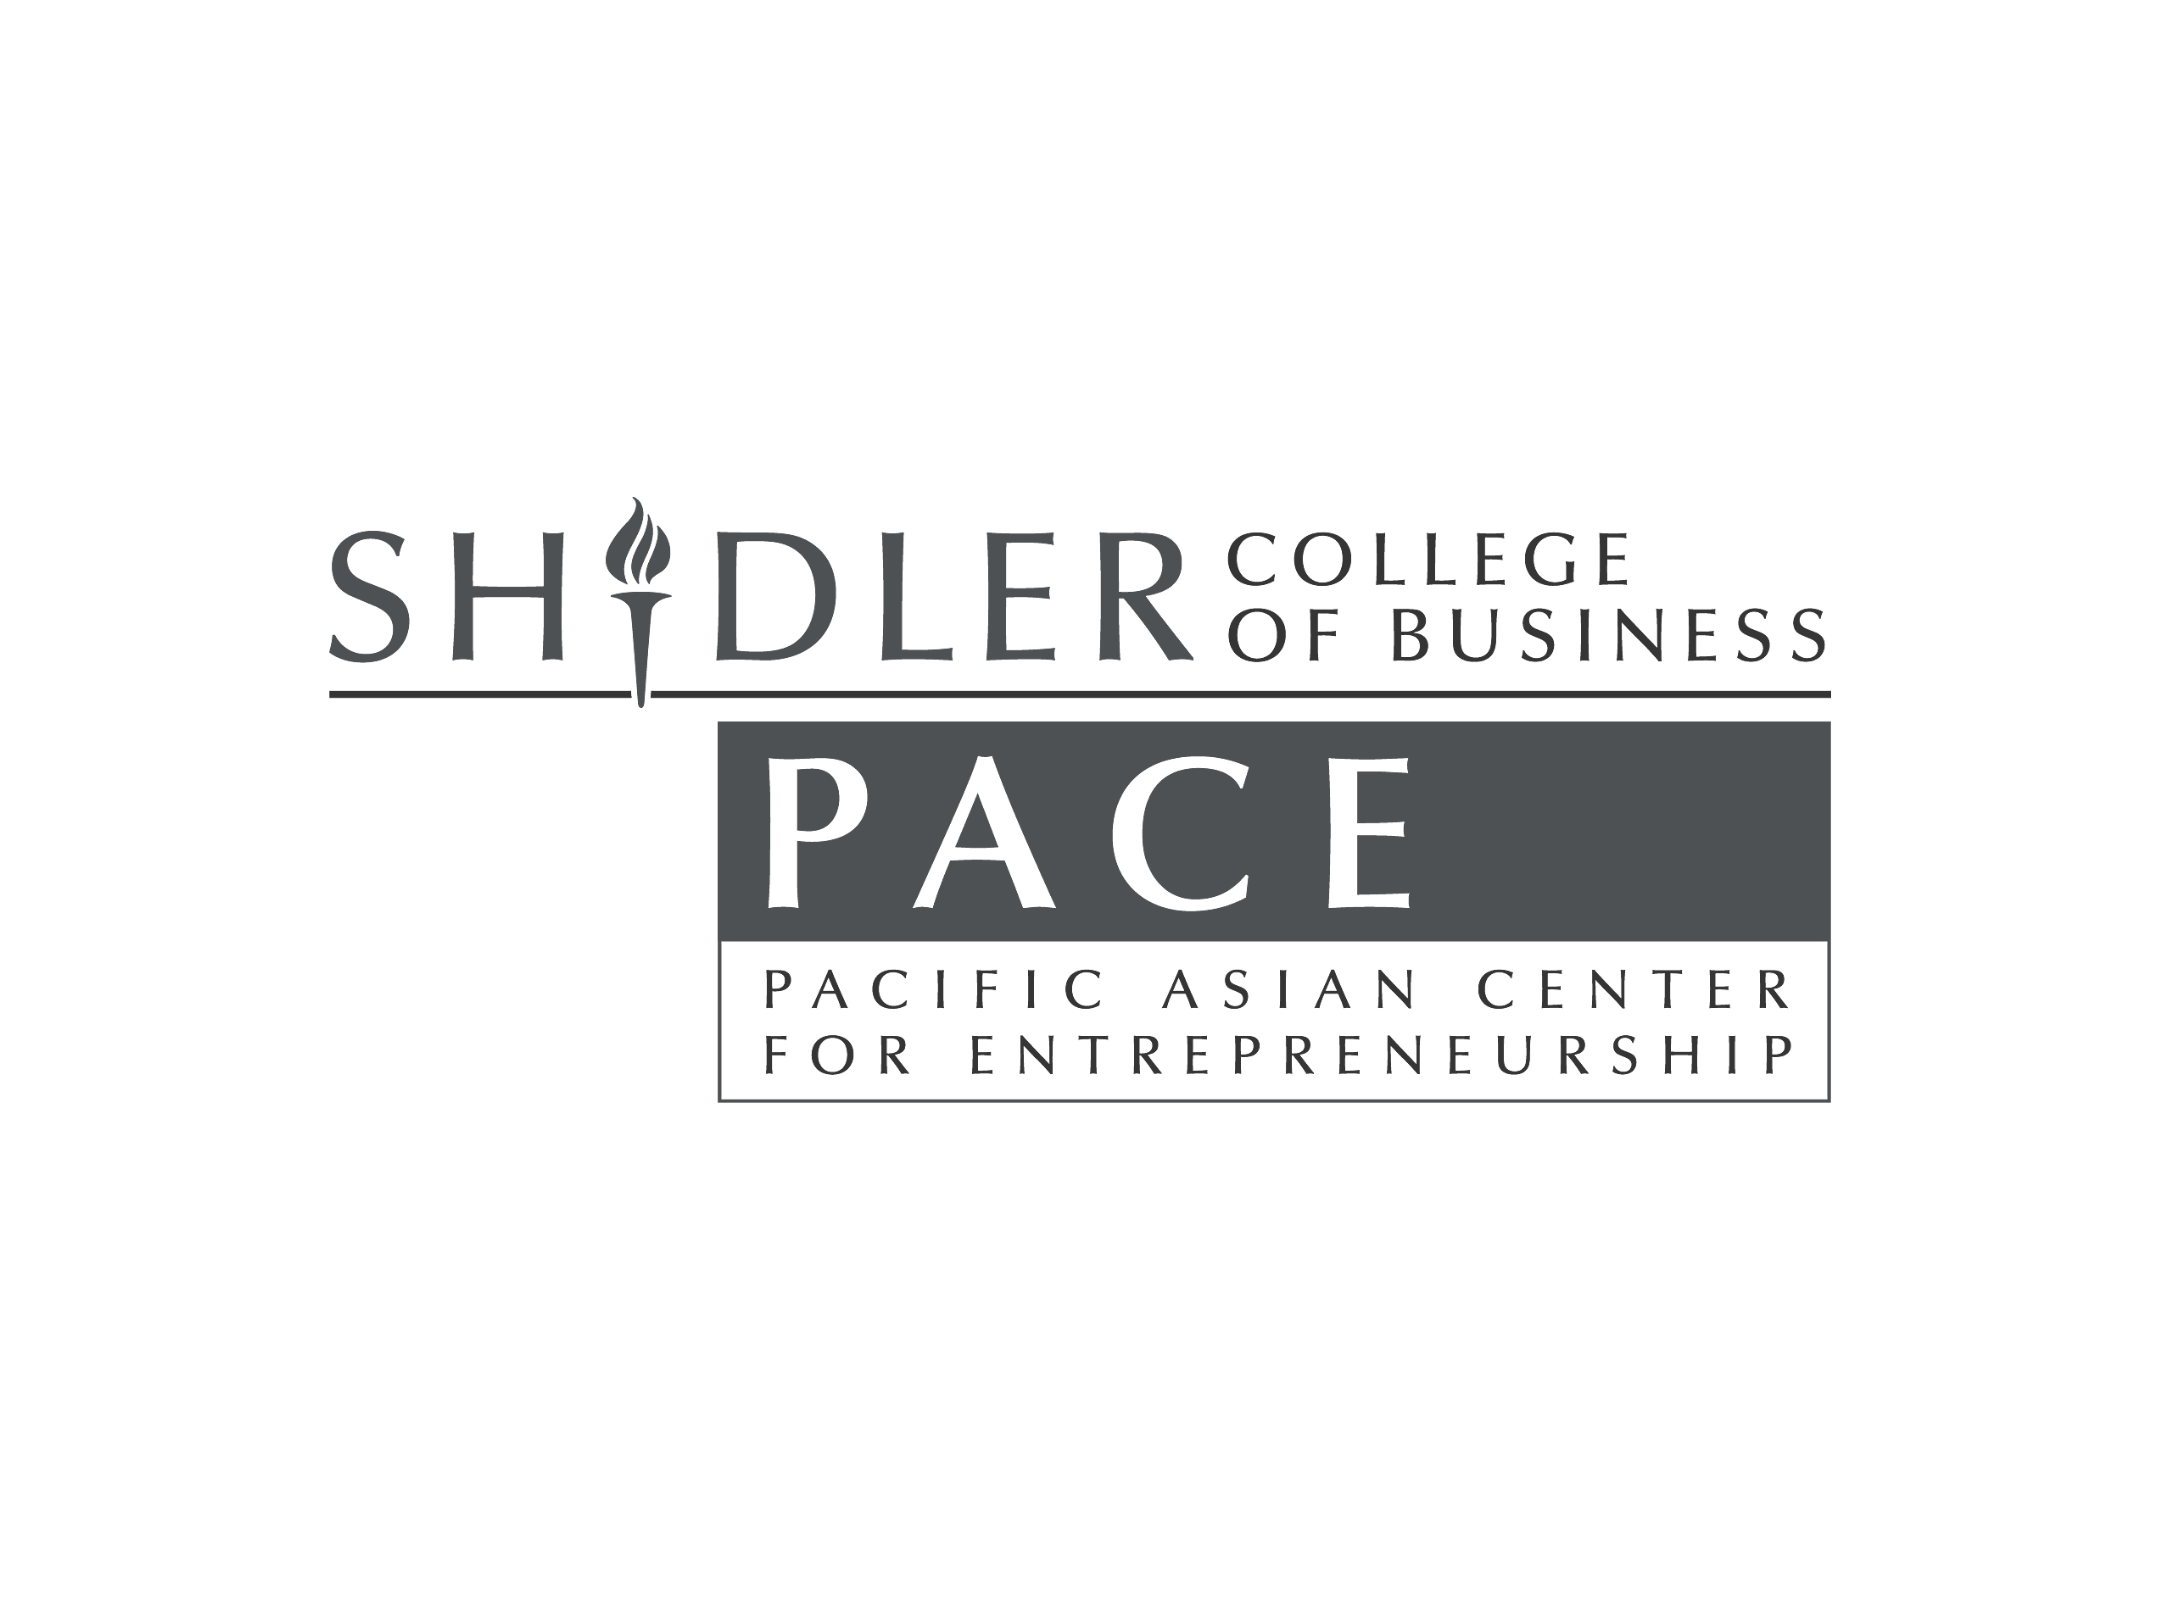 Shidler College of Business, the Pacific Asian Center for Entrepreneurship